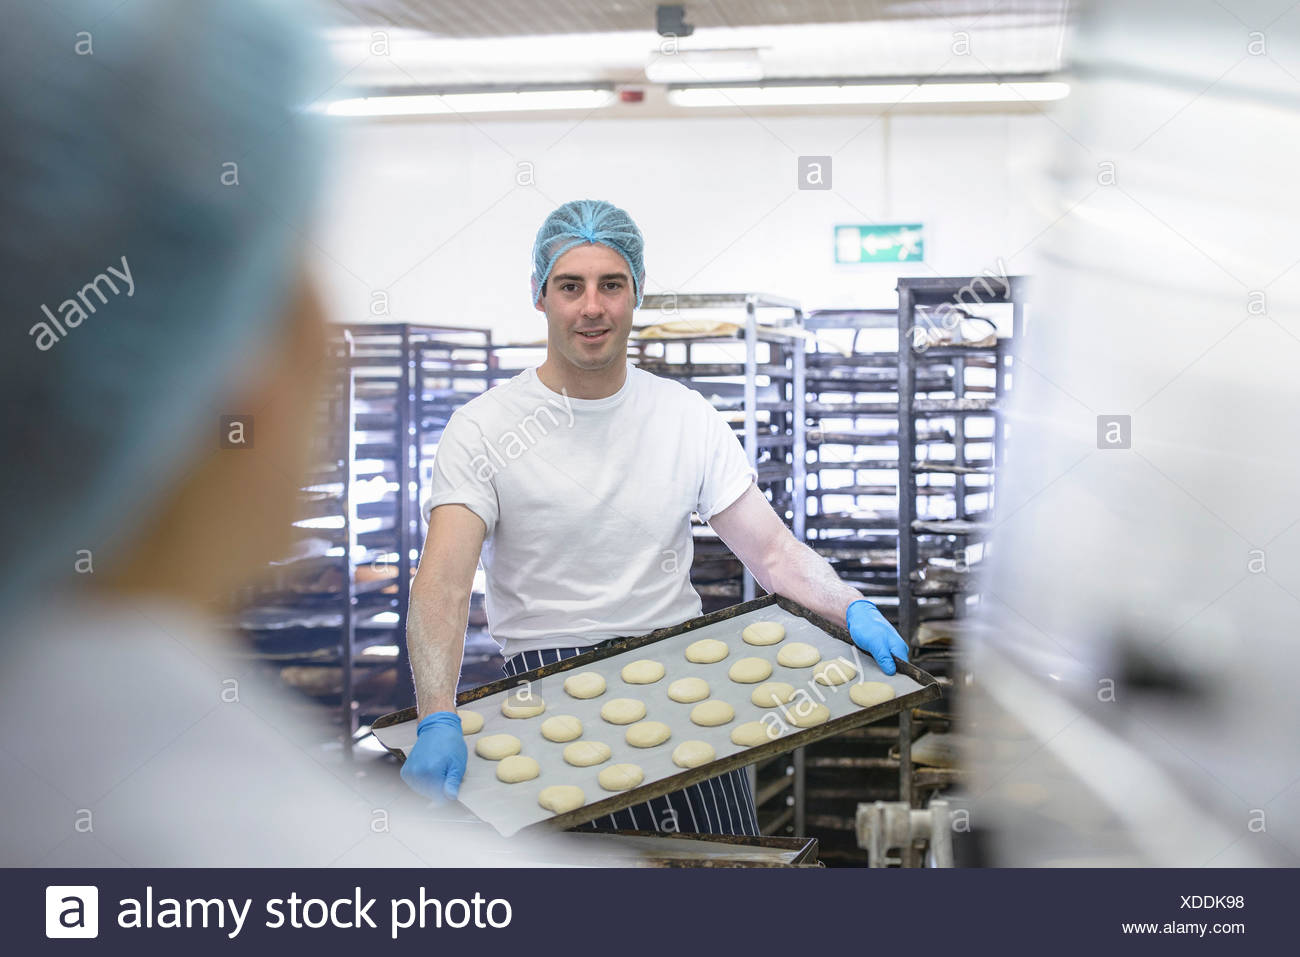 Baker holding tray of prepared dough ready for the oven - Stock Image